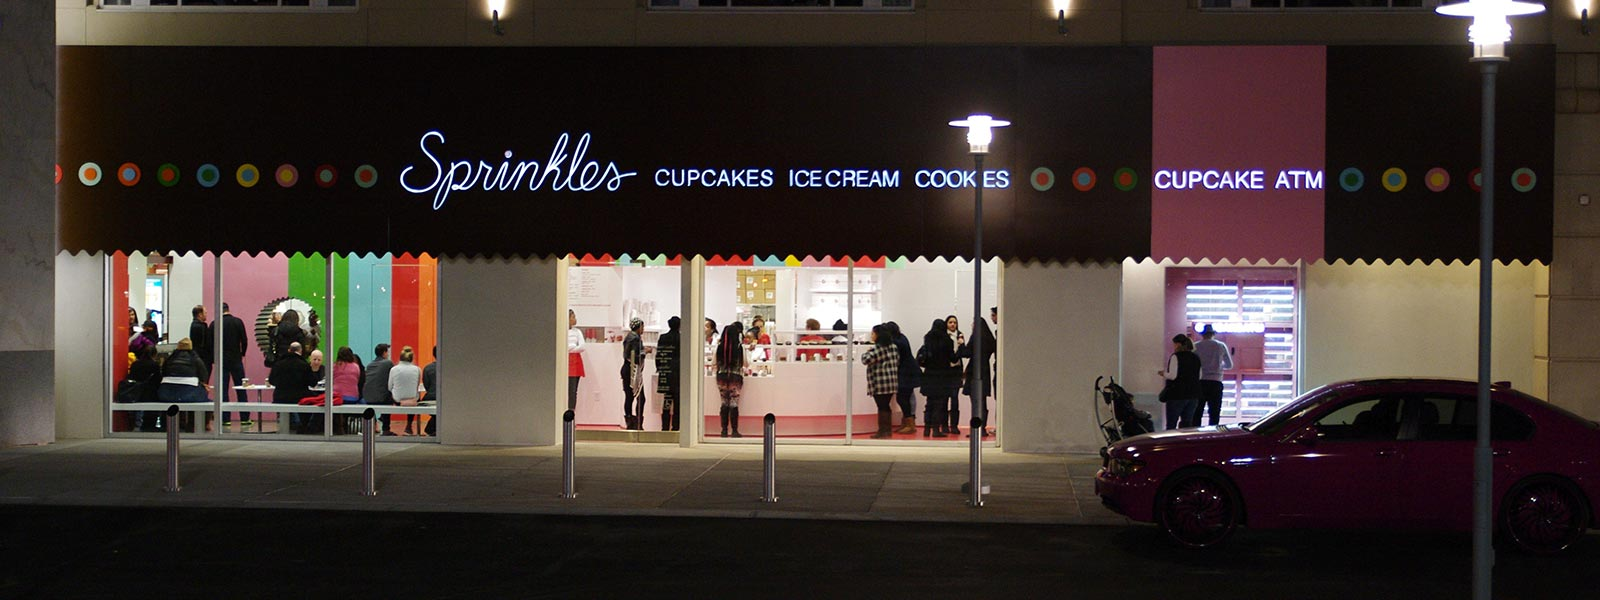 sprinkles case study Modernfold glass case study - sprinkles (pdf) sprinkles uses modernfold's 362 sr-drs glass wall system as a security wall to separate the shop and the open atrium area when their store is.